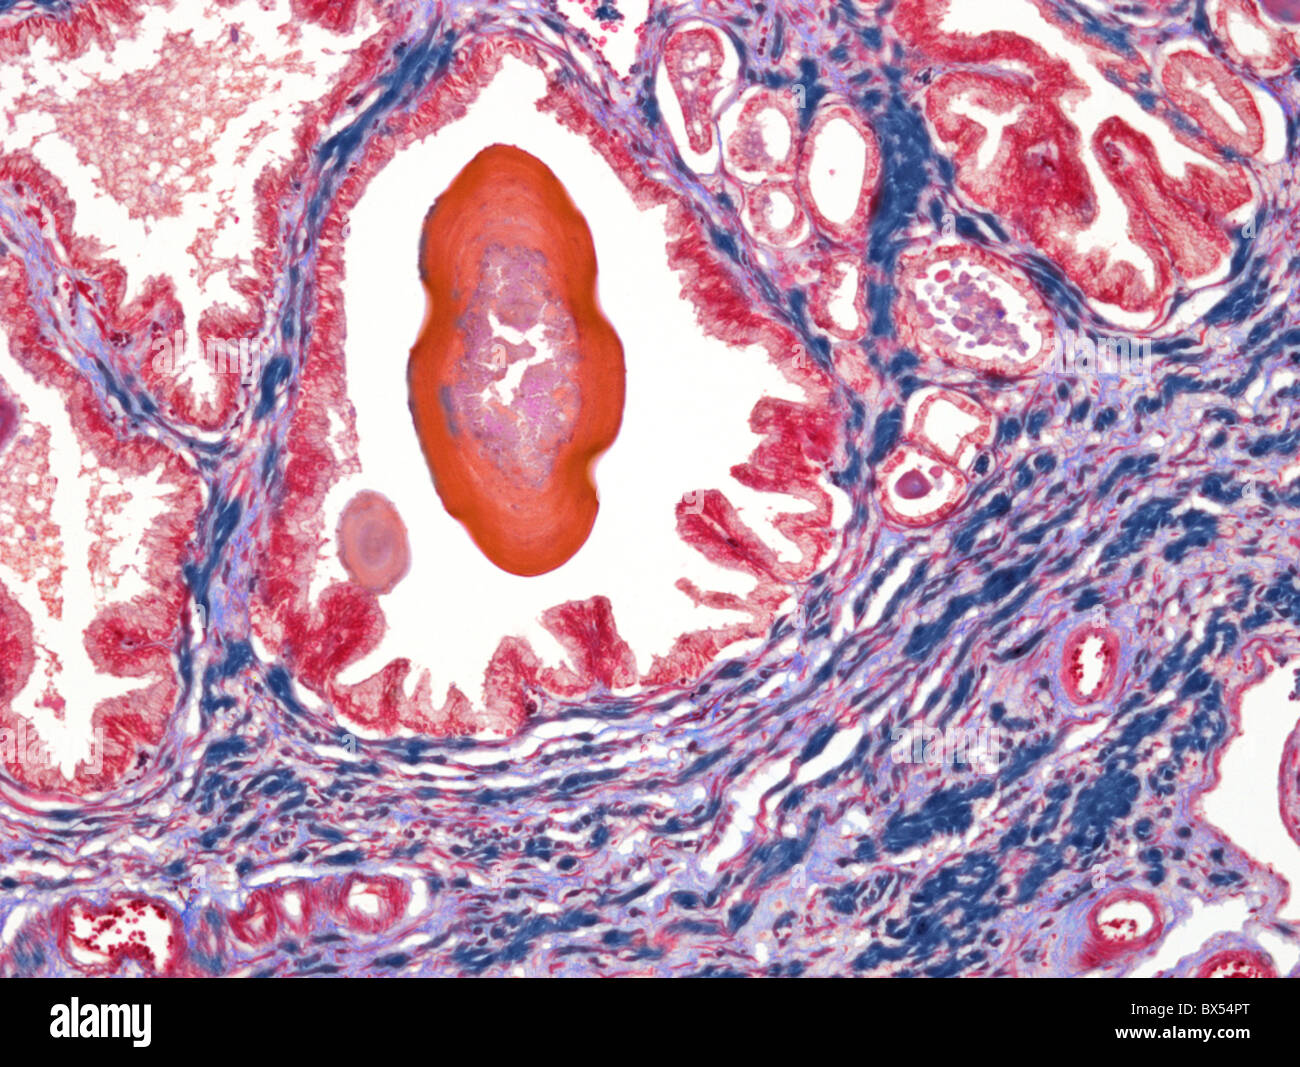 Prostate, light micrograph - Stock Image